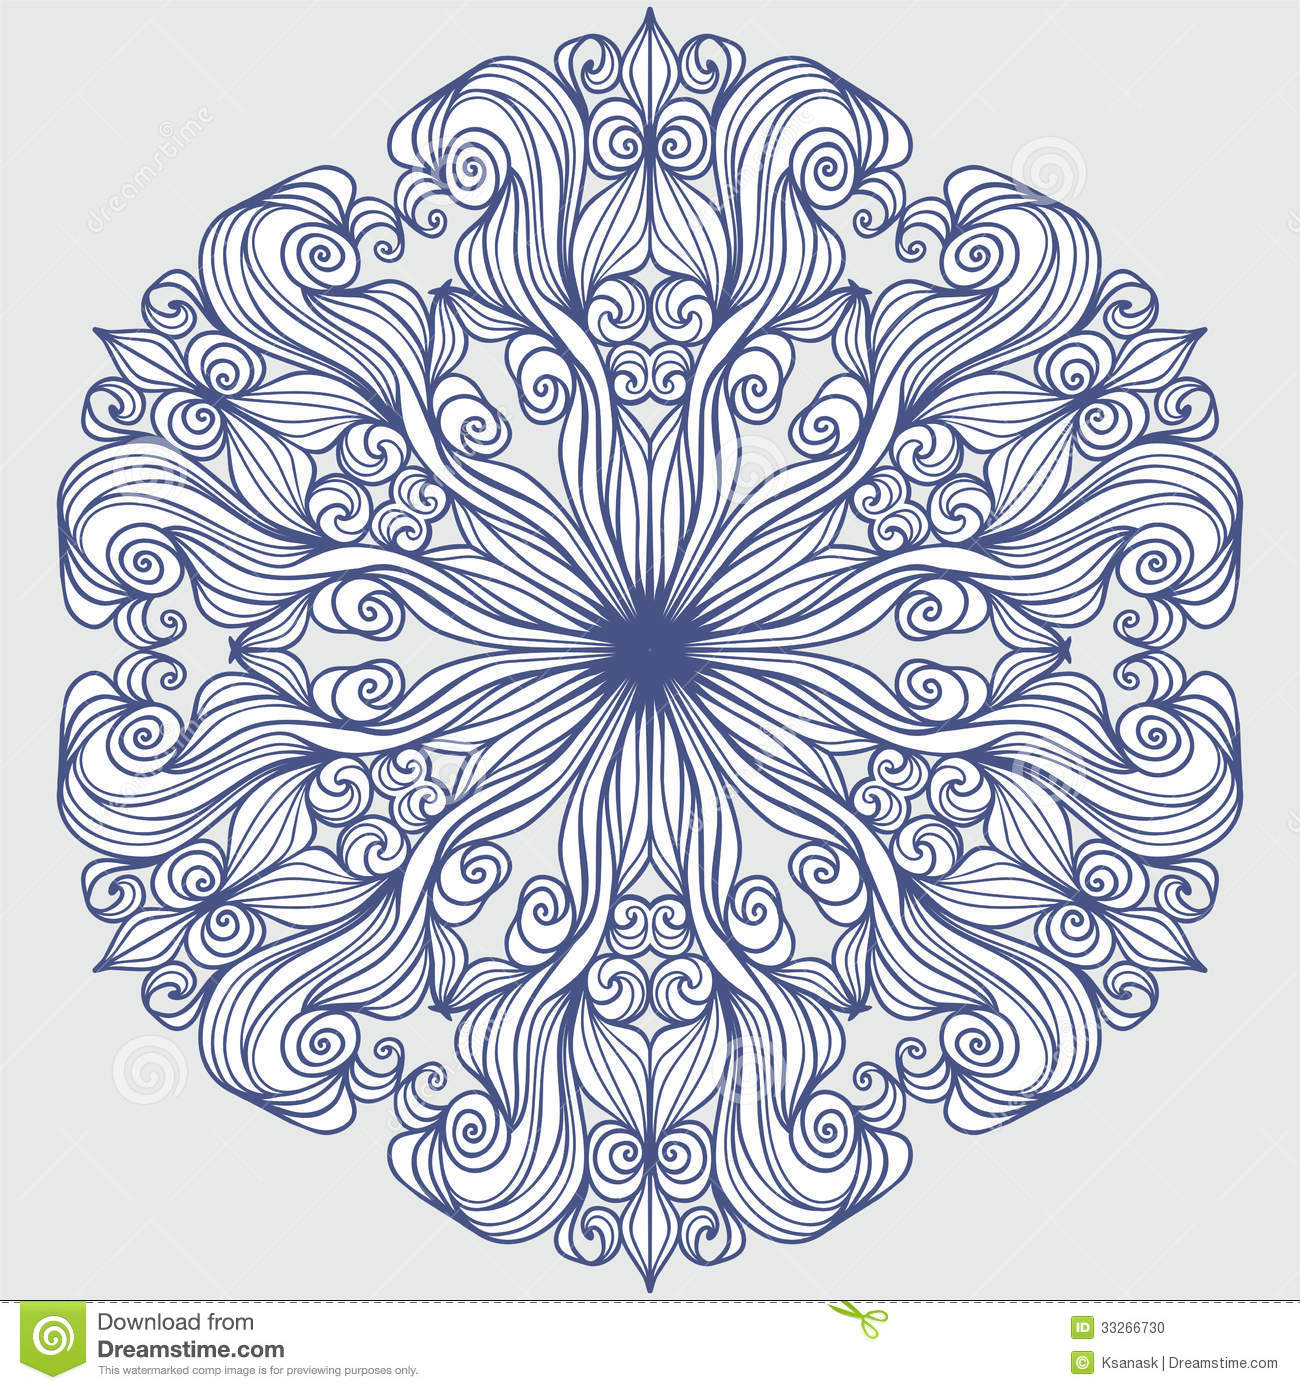 Colour Line Art Design : Design element round pattern stock vector image